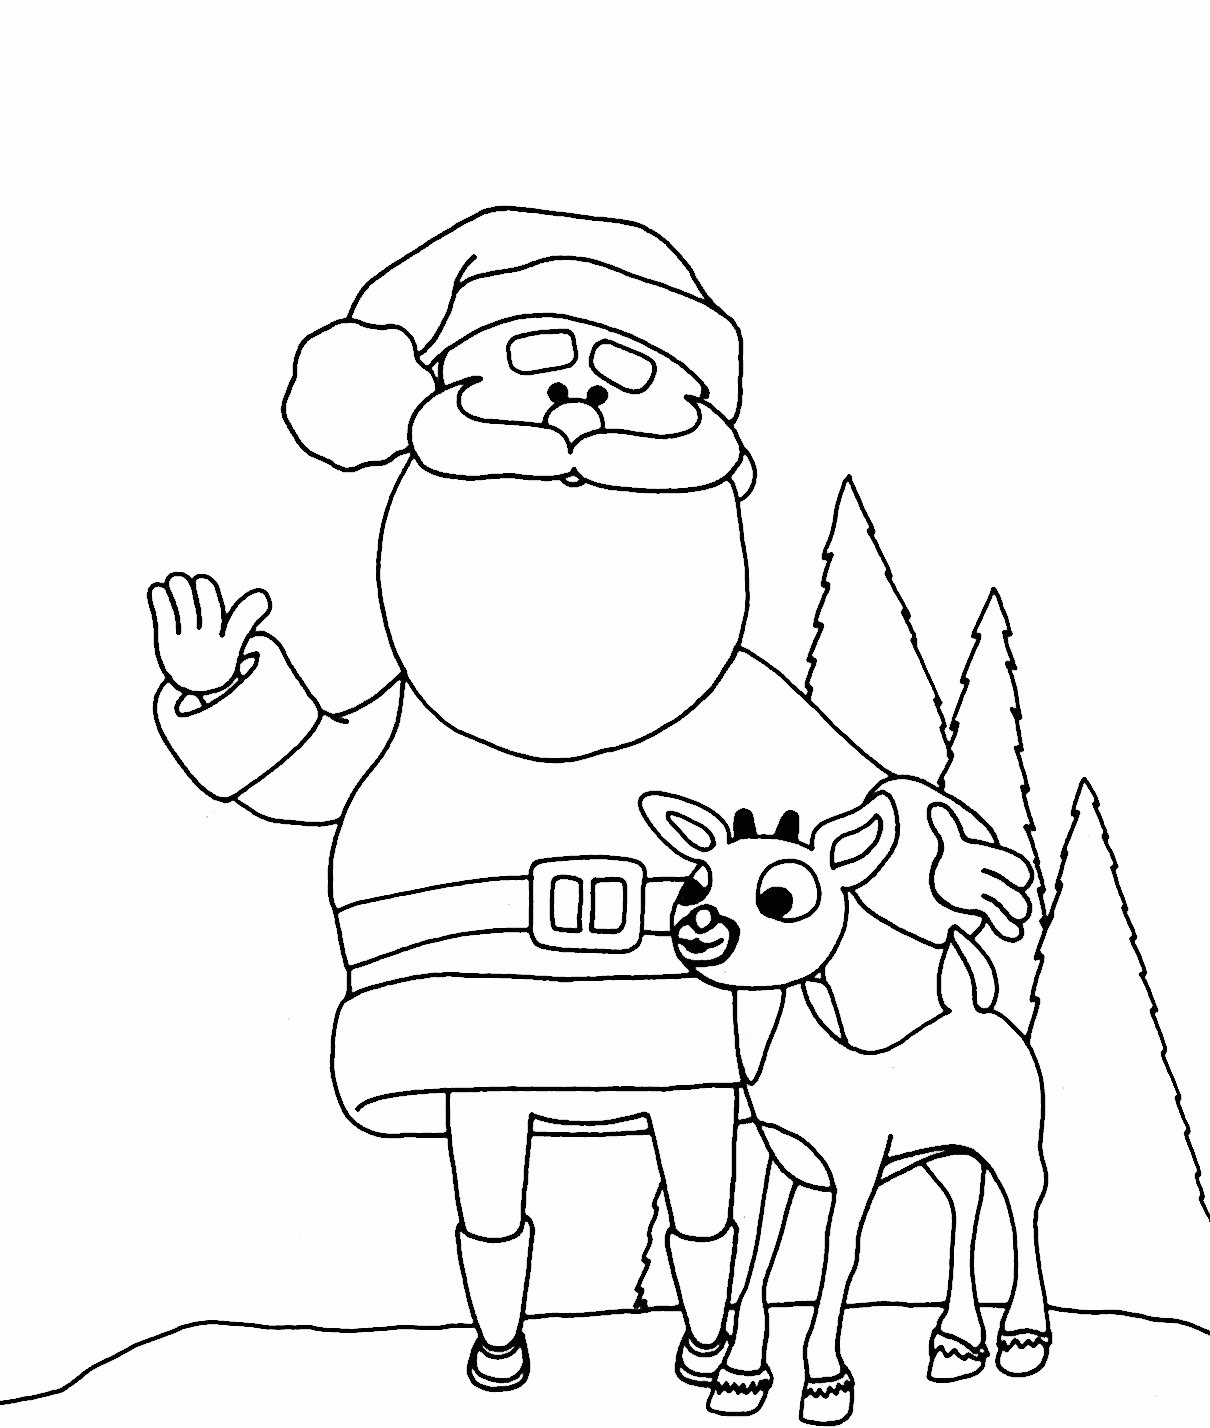 Free Father Christmas Colouring Pictures, Download Free Clip Art ... | 1428x1210